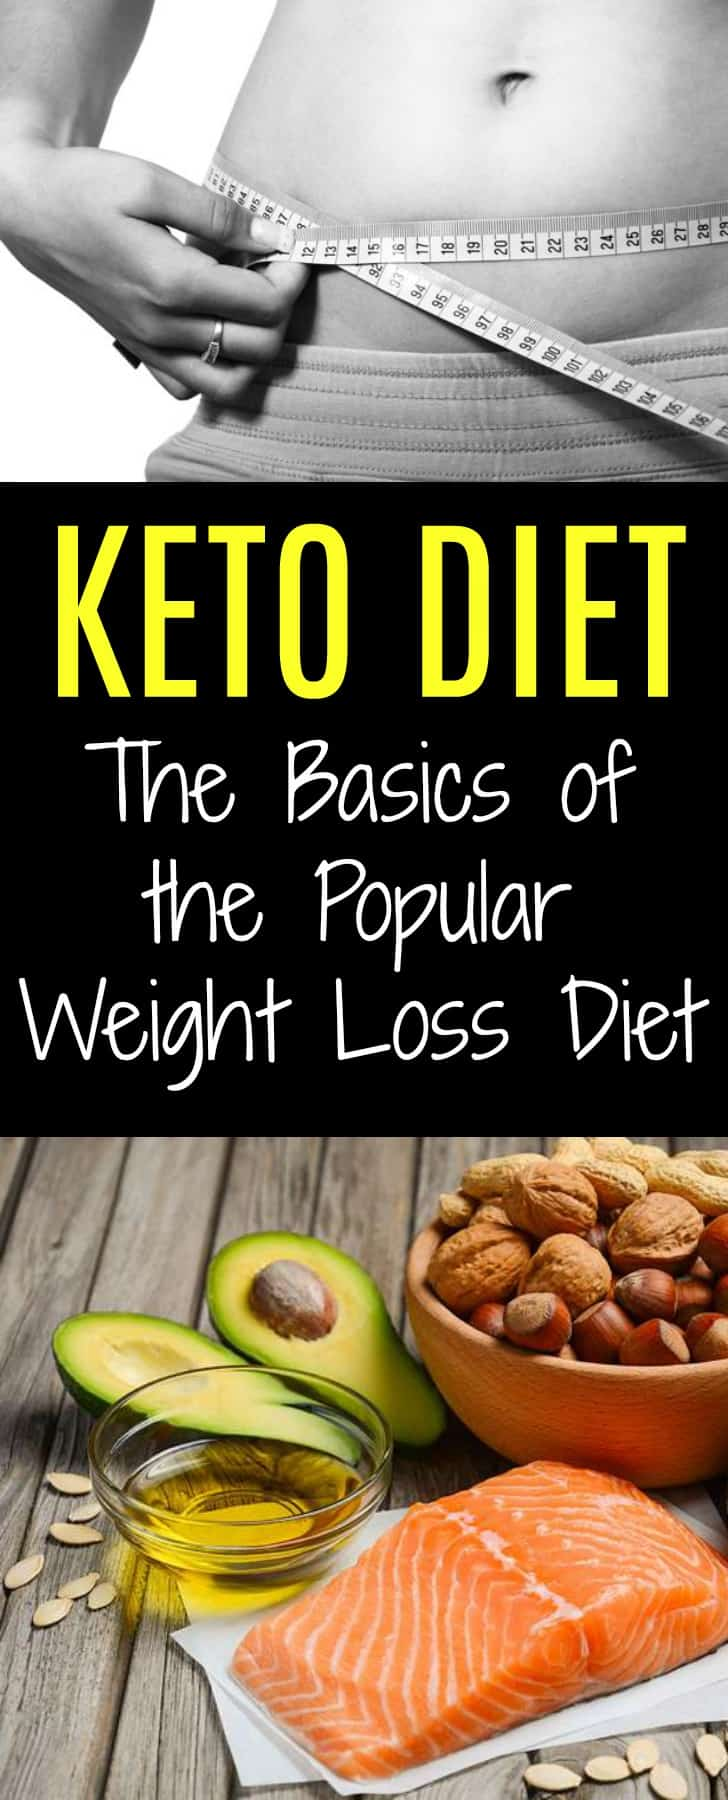 Keto Diet 101: The Basics of the Popular Weight Loss Diet